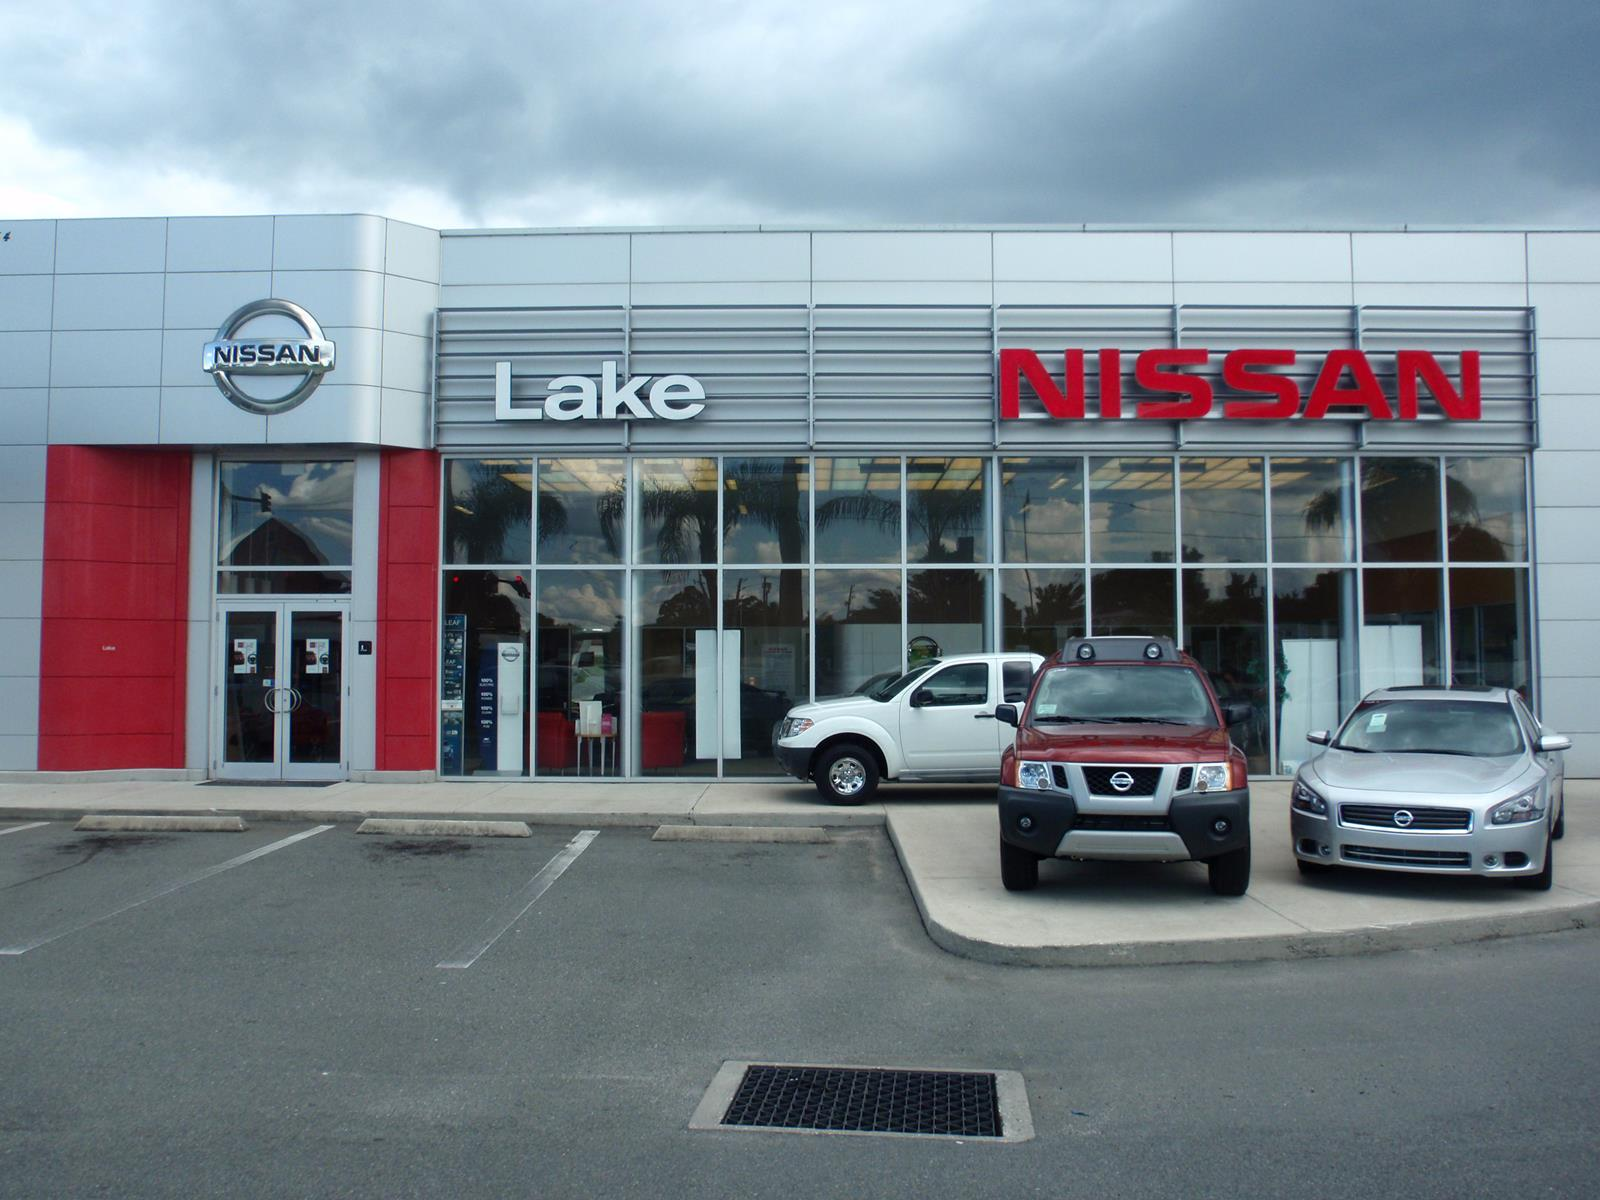 Lake Nissan 10234 US Highway 441, Leesburg, FL 34788 - YP.com